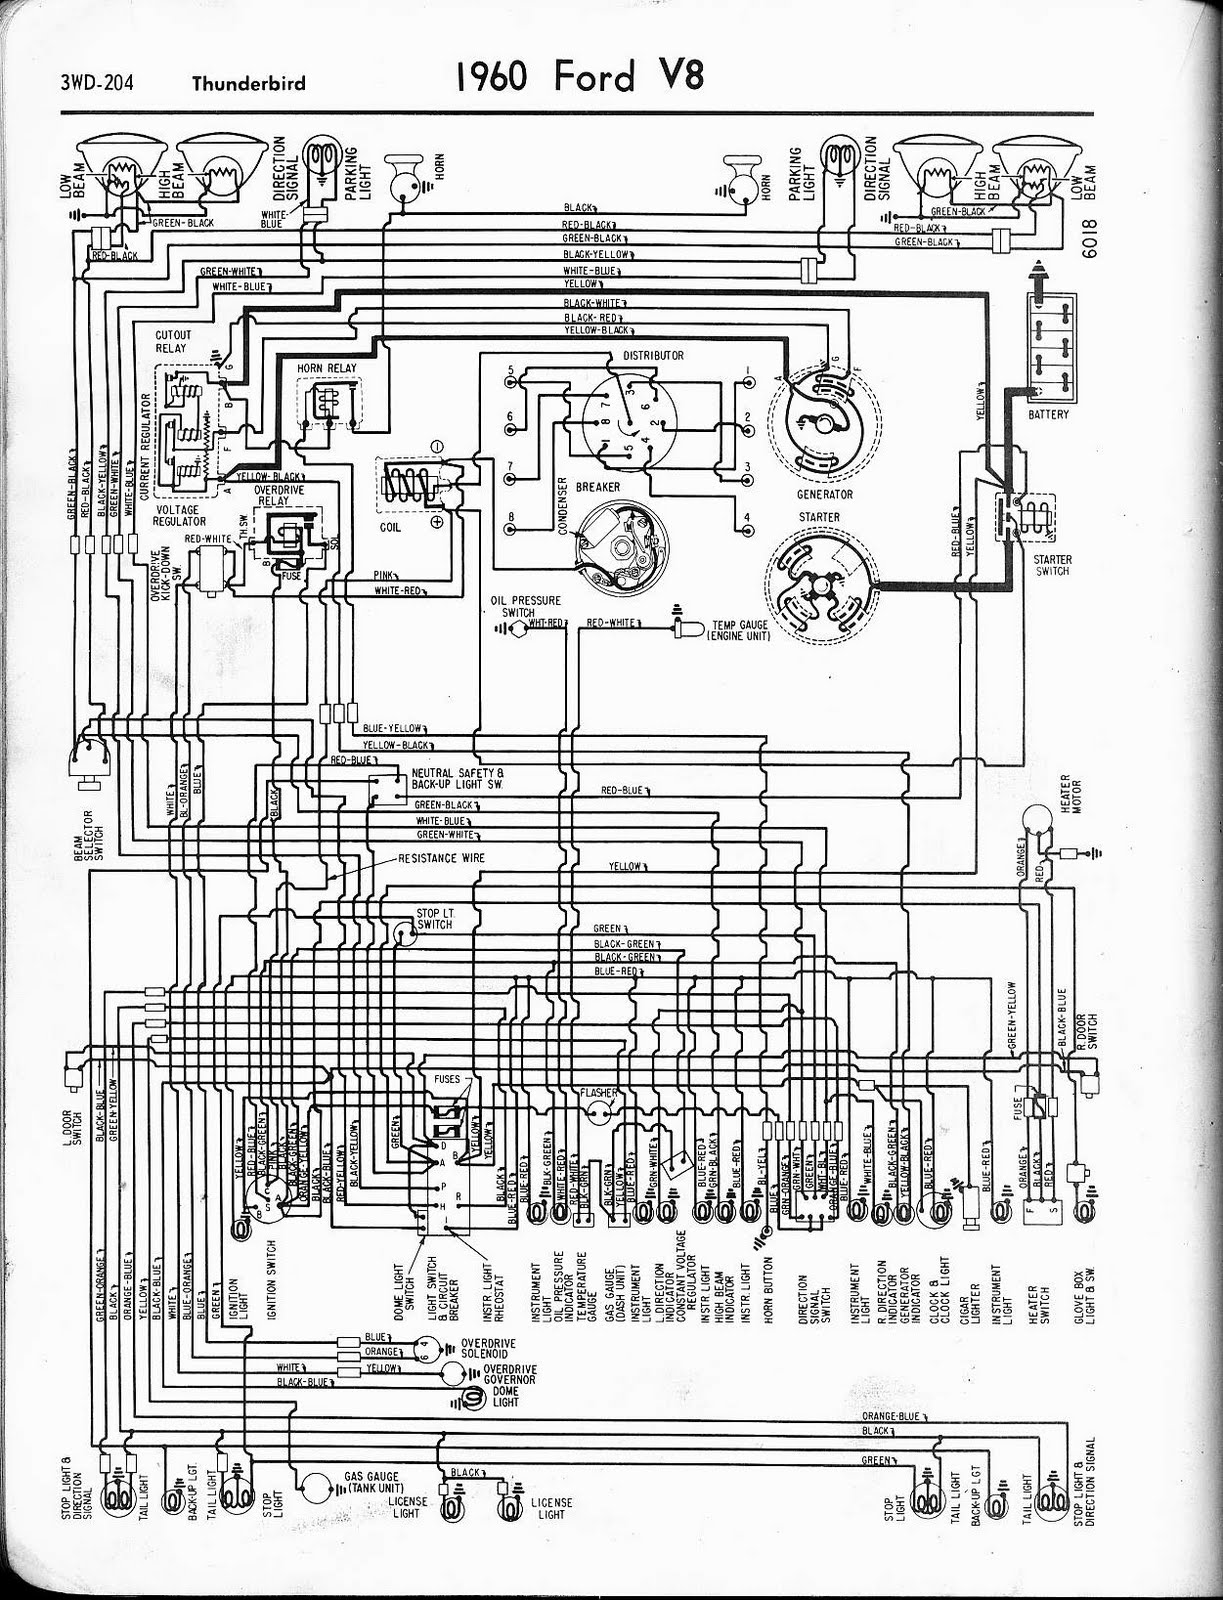 1964 thunderbird wiring schematics wiring diagram. Black Bedroom Furniture Sets. Home Design Ideas